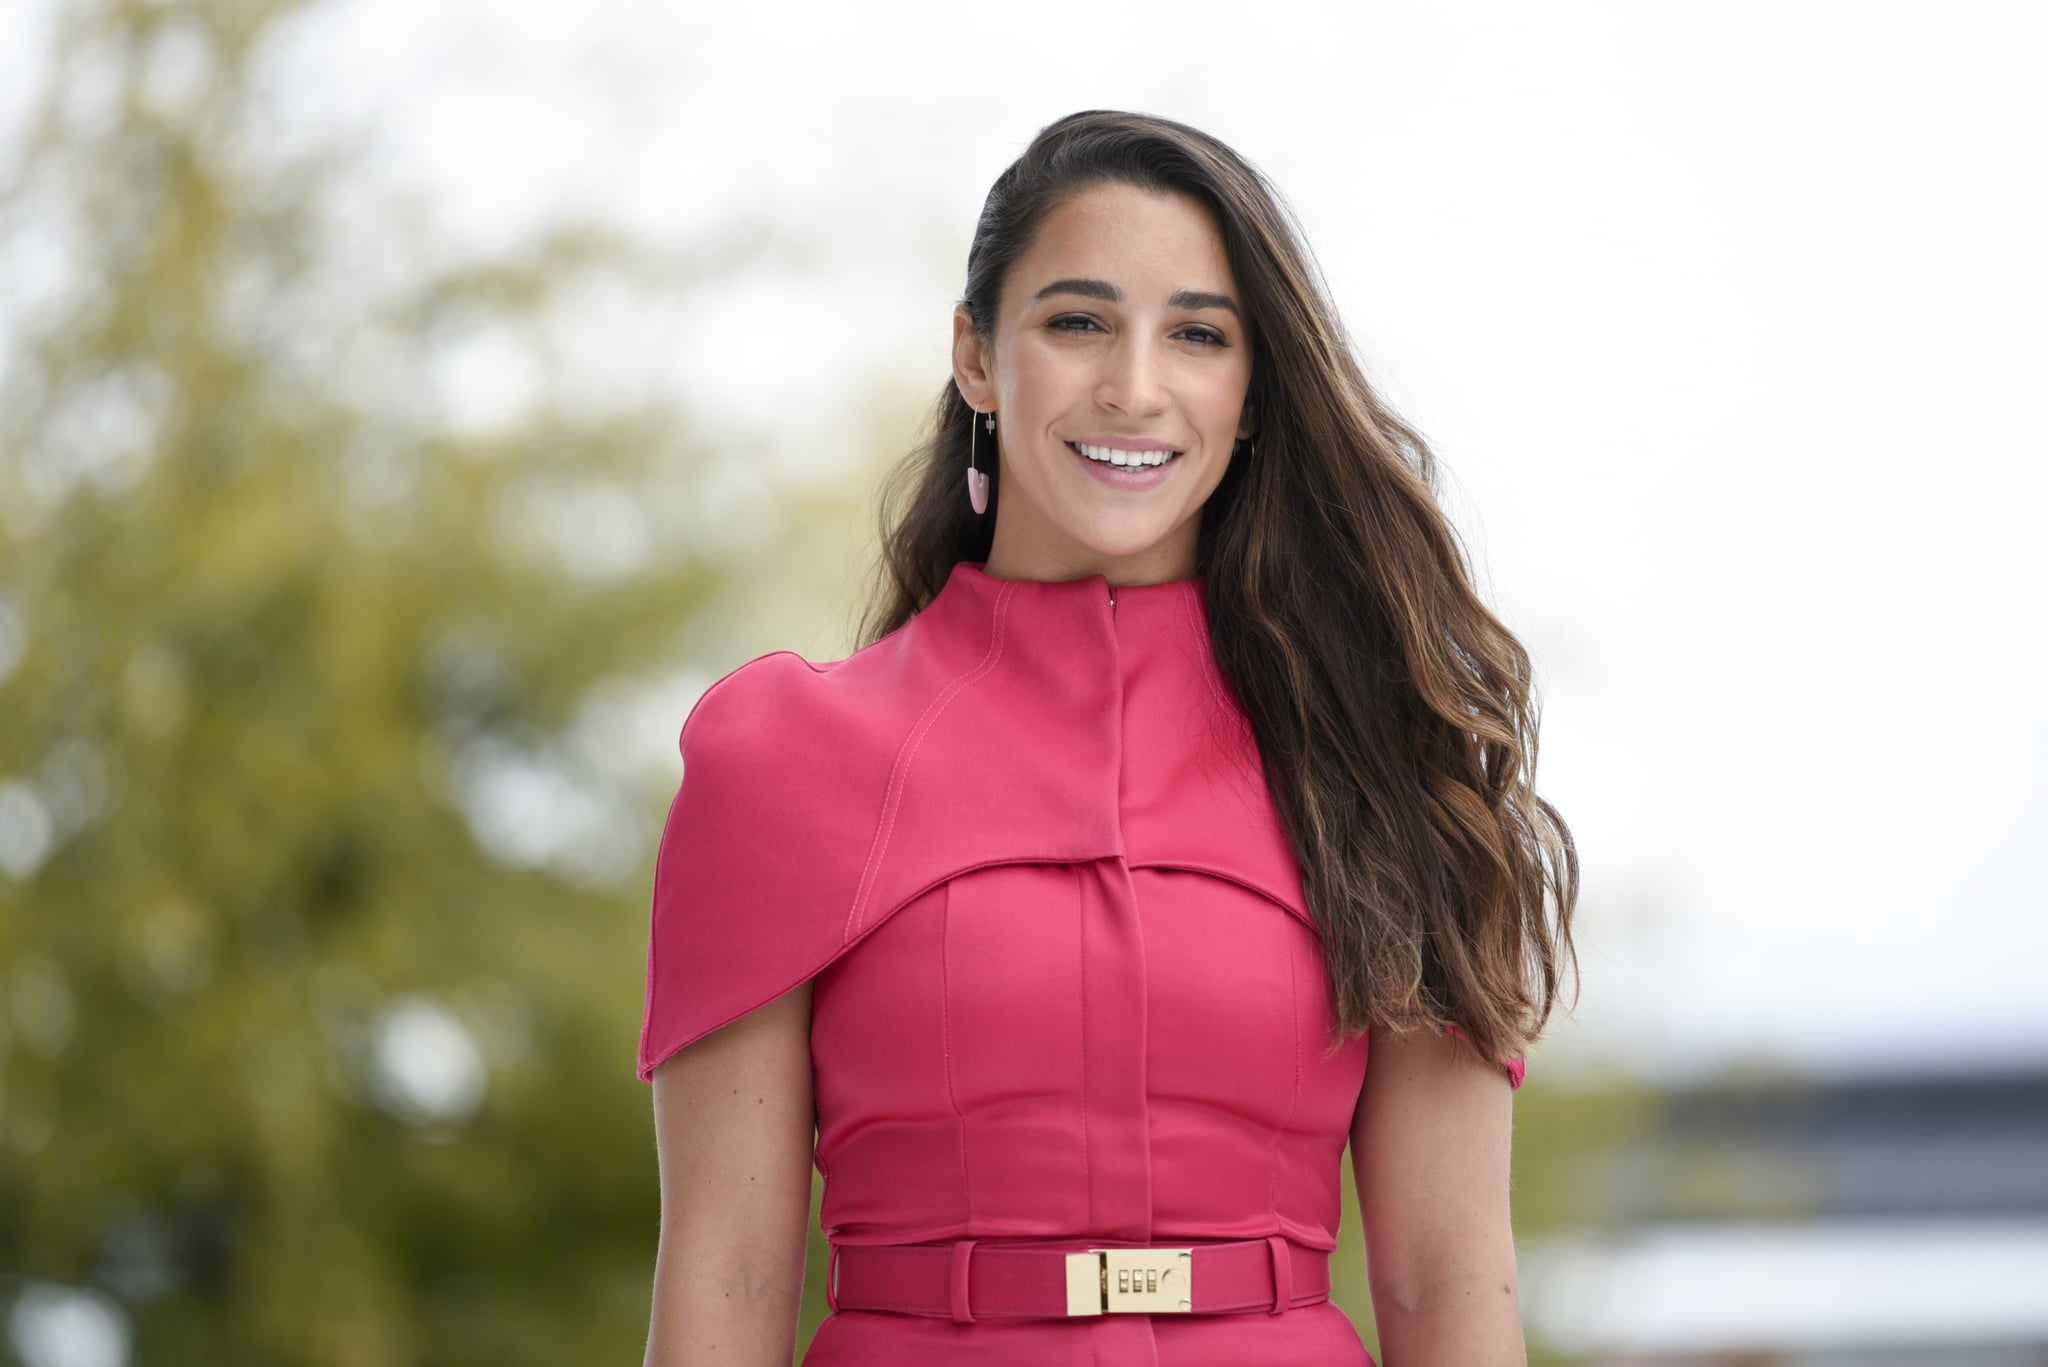 CUPERTINO, CA - MARCH 25: Olympian gymnast Aly Raisman poses for a photo during an Apple product launch event at the Steve Jobs Theatre at Apple Park on March 25, 2019 in Cupertino, California. Apple announced the launch of it's new video streaming service, unveiled a premium subscription tier to its News app, and announced  it would release its own credit card, called Apple Card.  (Photo by Michael Short/Getty Images)